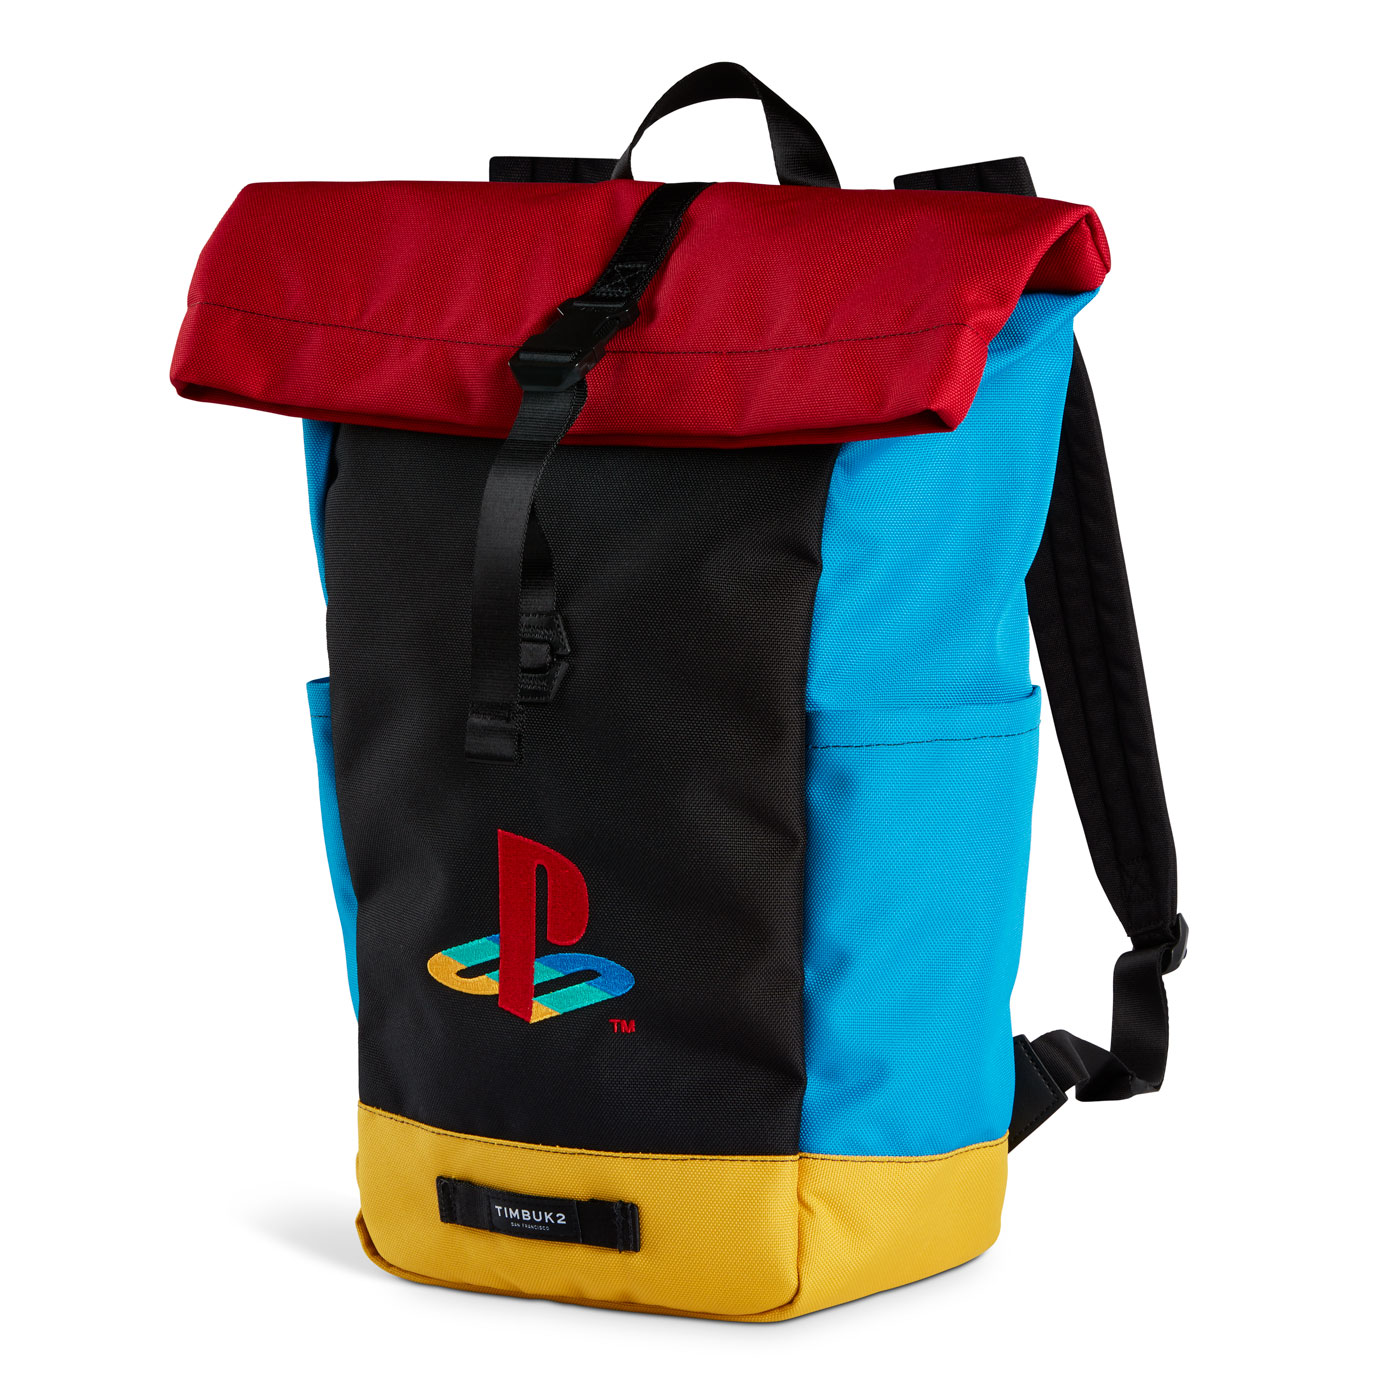 best gifts for gamers 2020- PlayStation Backpack